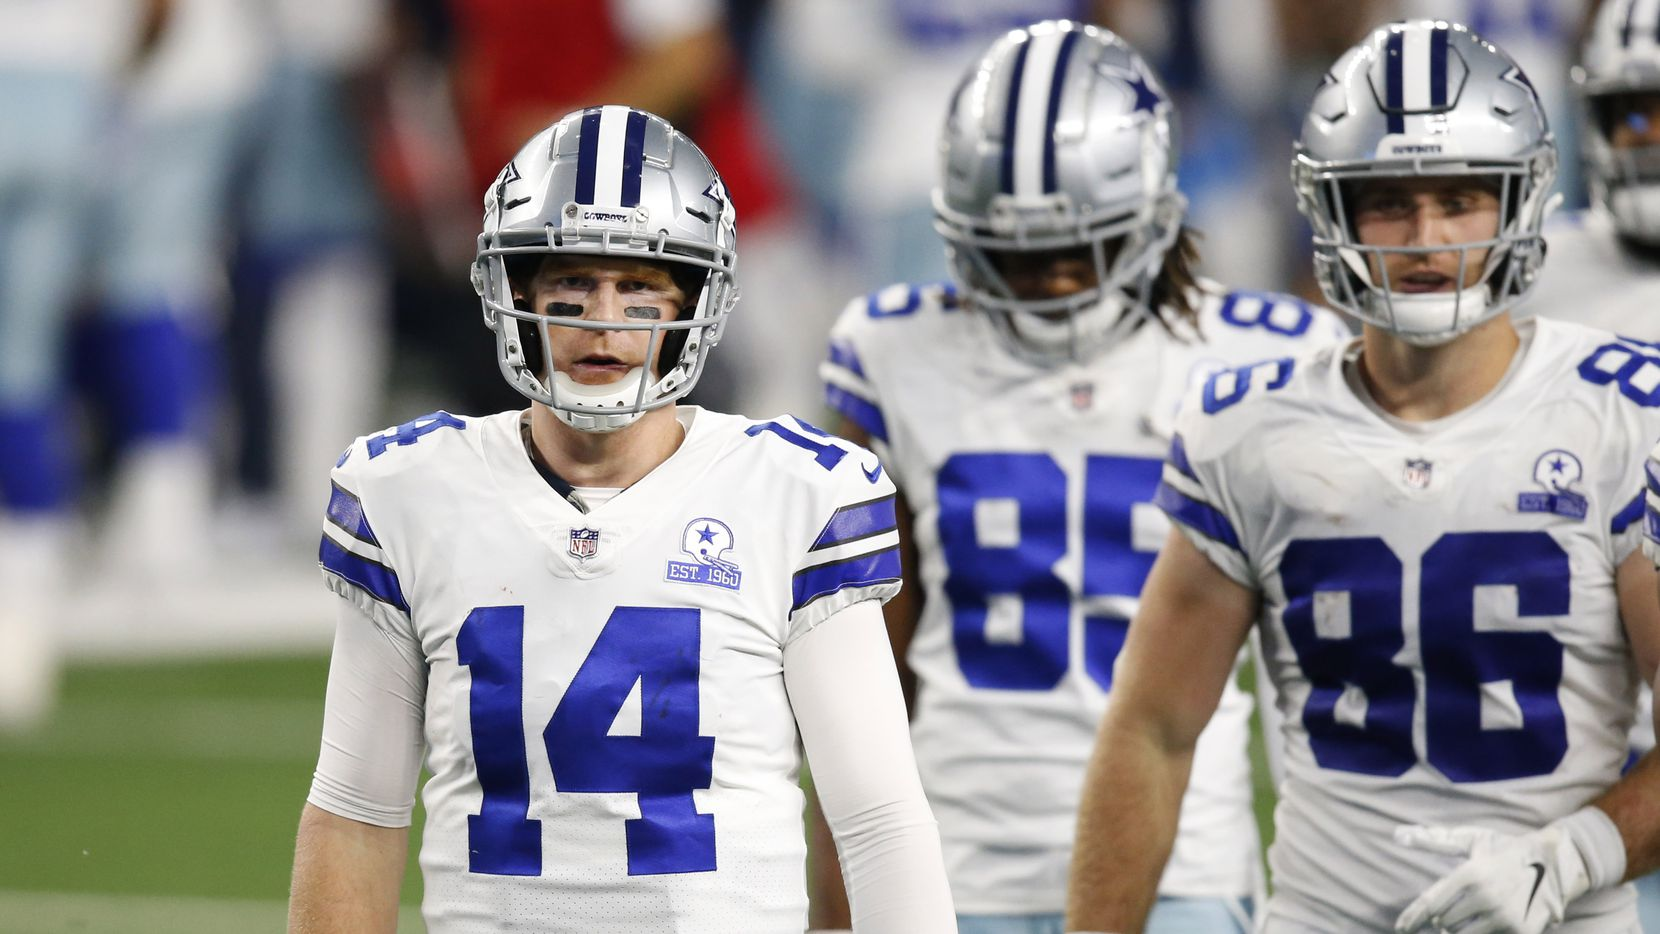 Dallas Cowboys quarterback Andy Dalton (14) makes his way onto the field in a game against the Arizona Cardinals during the third quarter of play at AT&T Stadium on Monday, October 19, 2020 in Arlington, Texas.